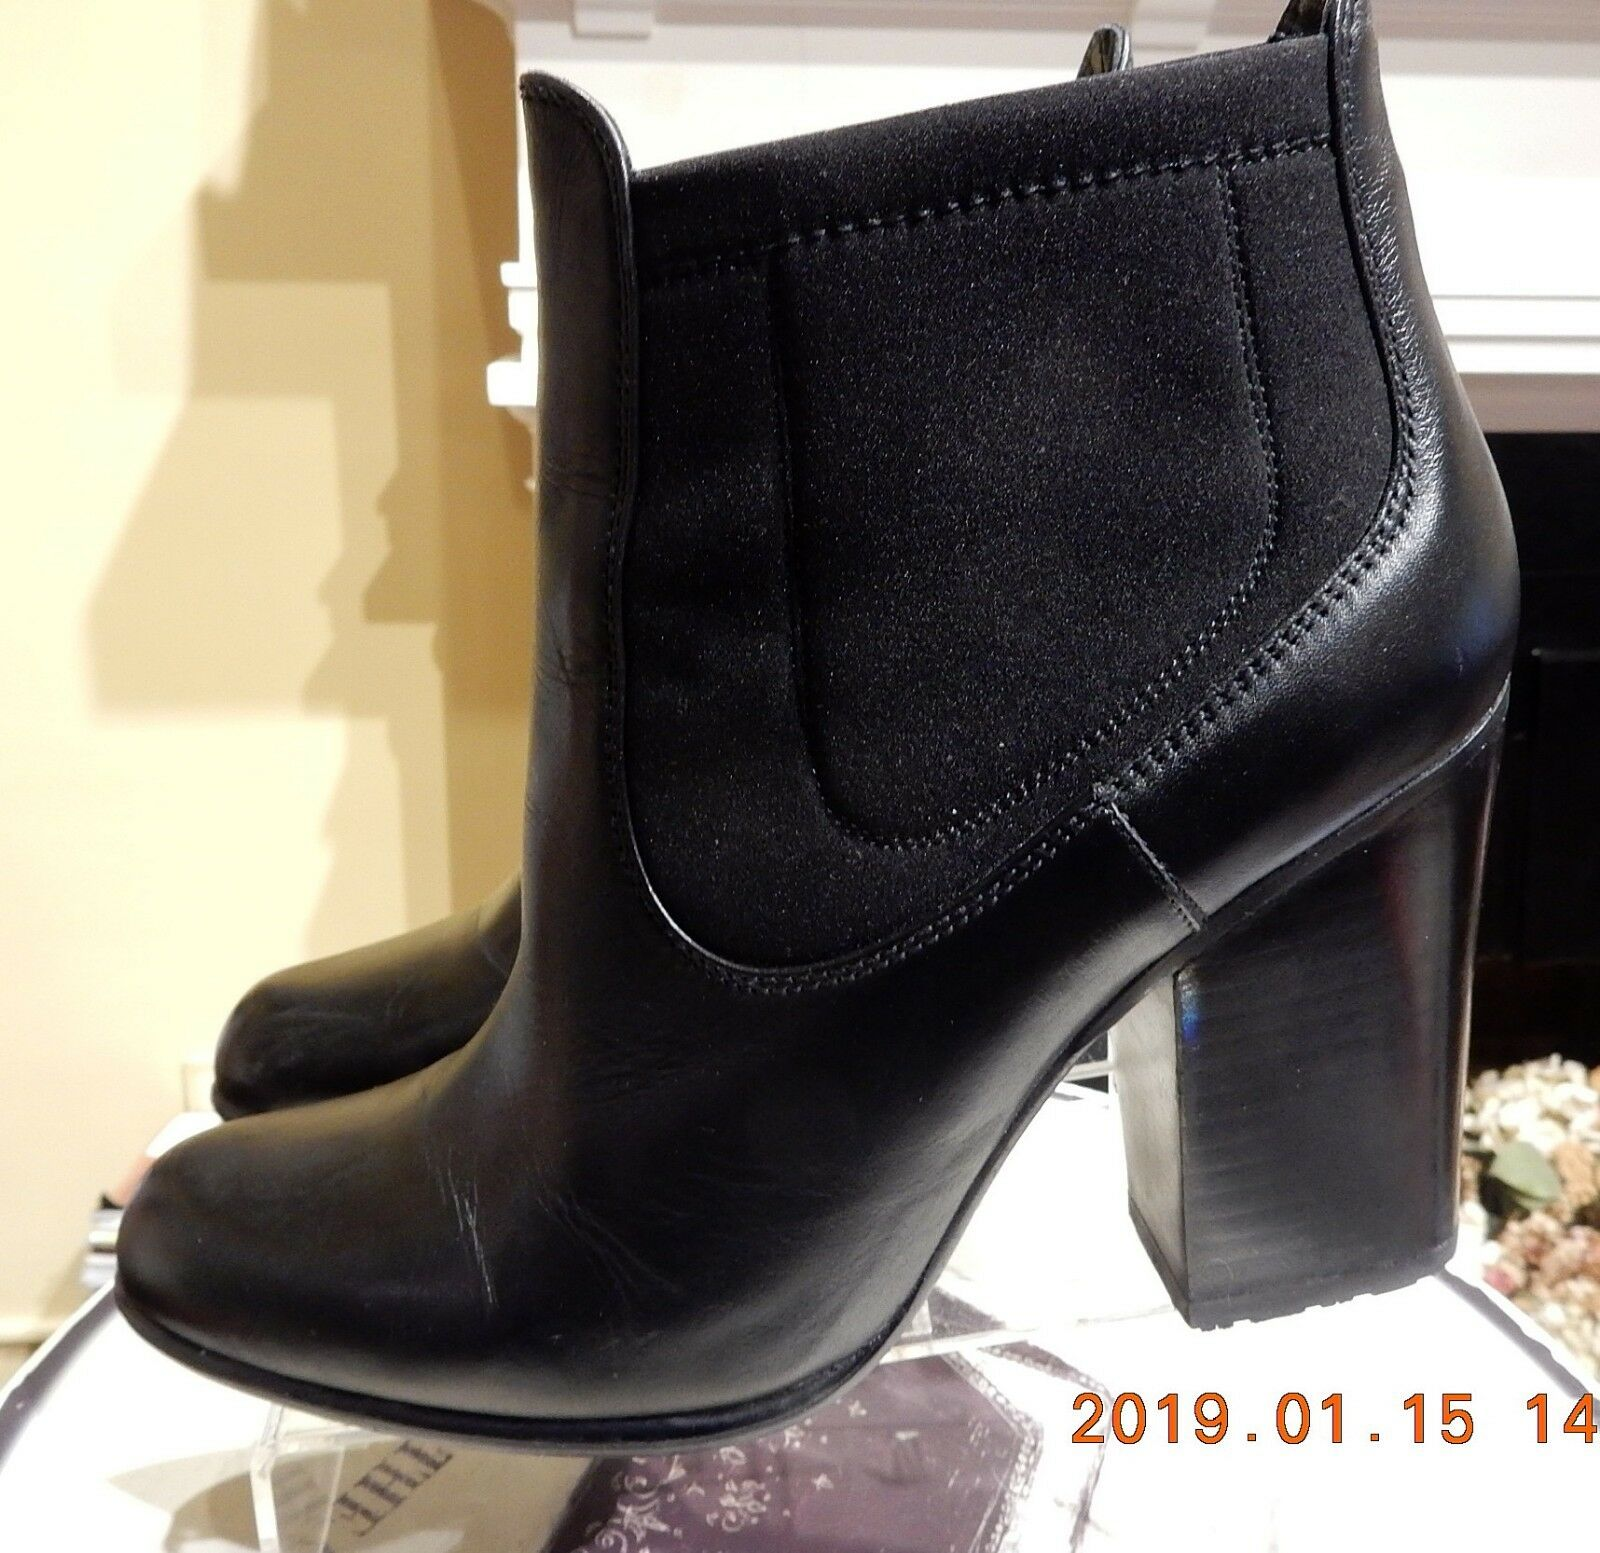 STUART WEITZMAN BLACK LEATHER 4  ANKLE BOOTS IN SIZE 9M